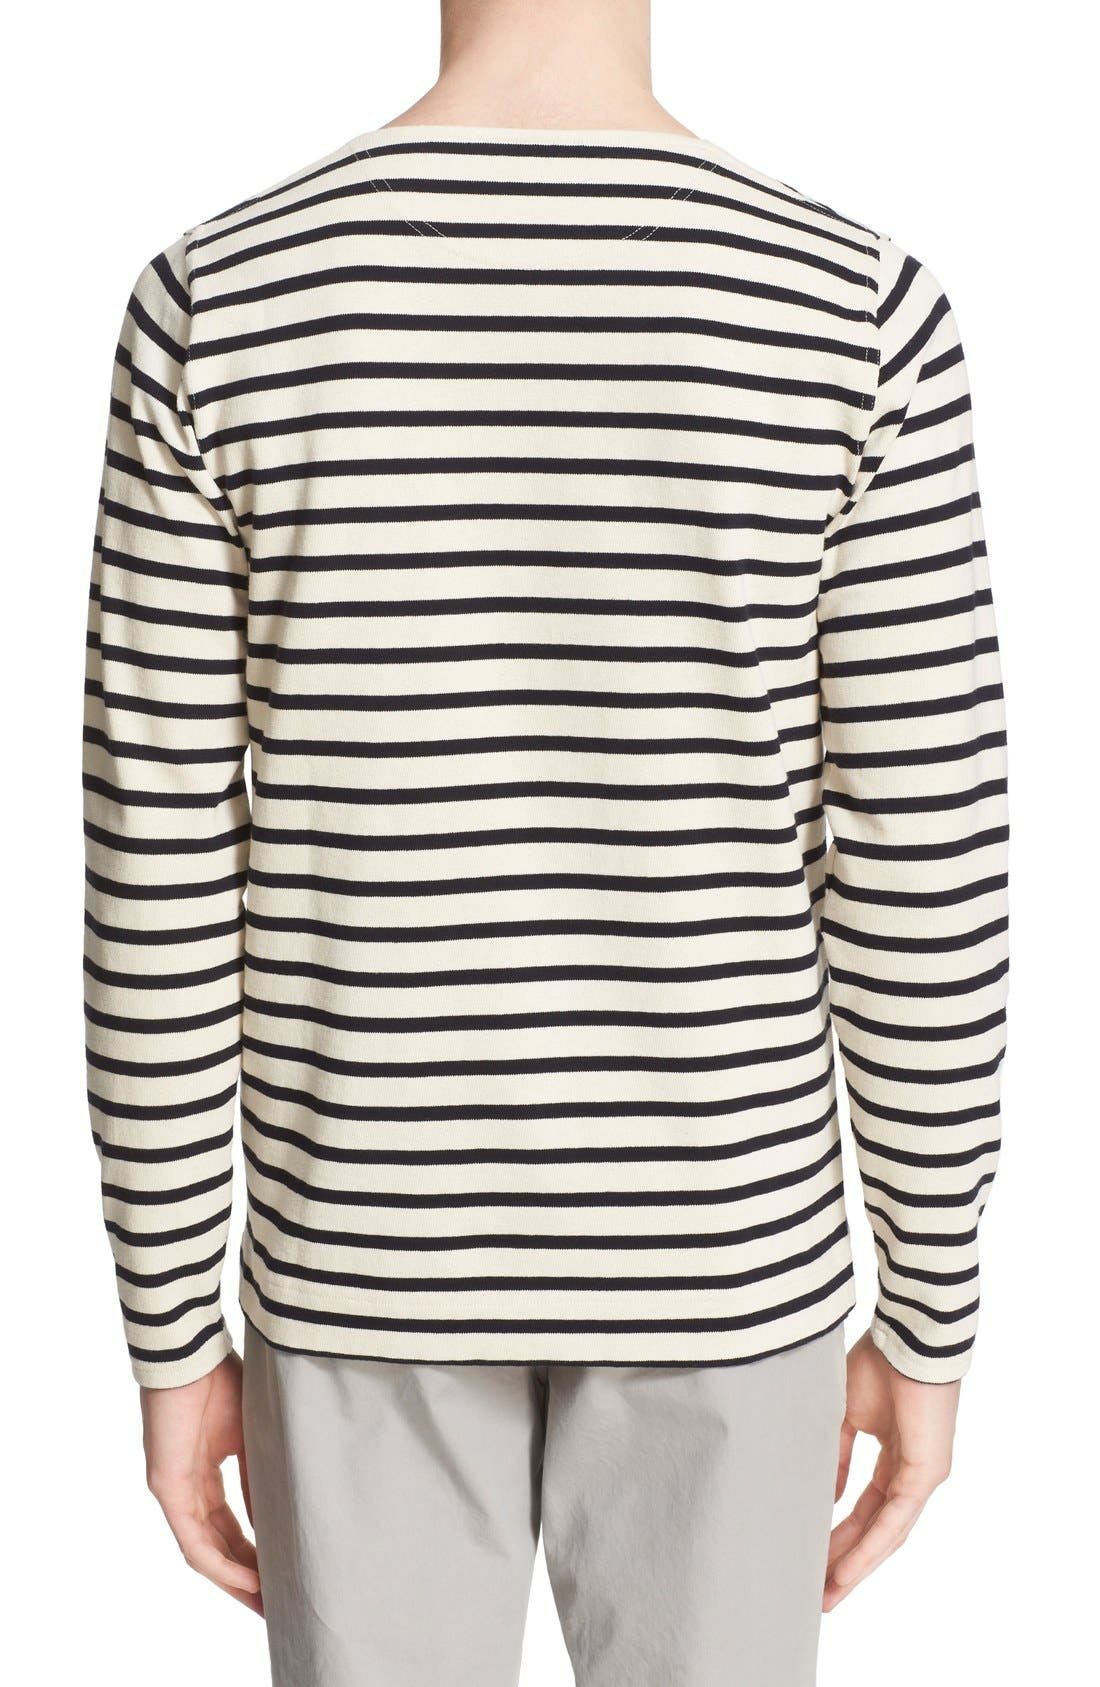 Alternate Image 2  - Norse Projects 'Godtfred' Stripe Long Sleeve T-Shirt